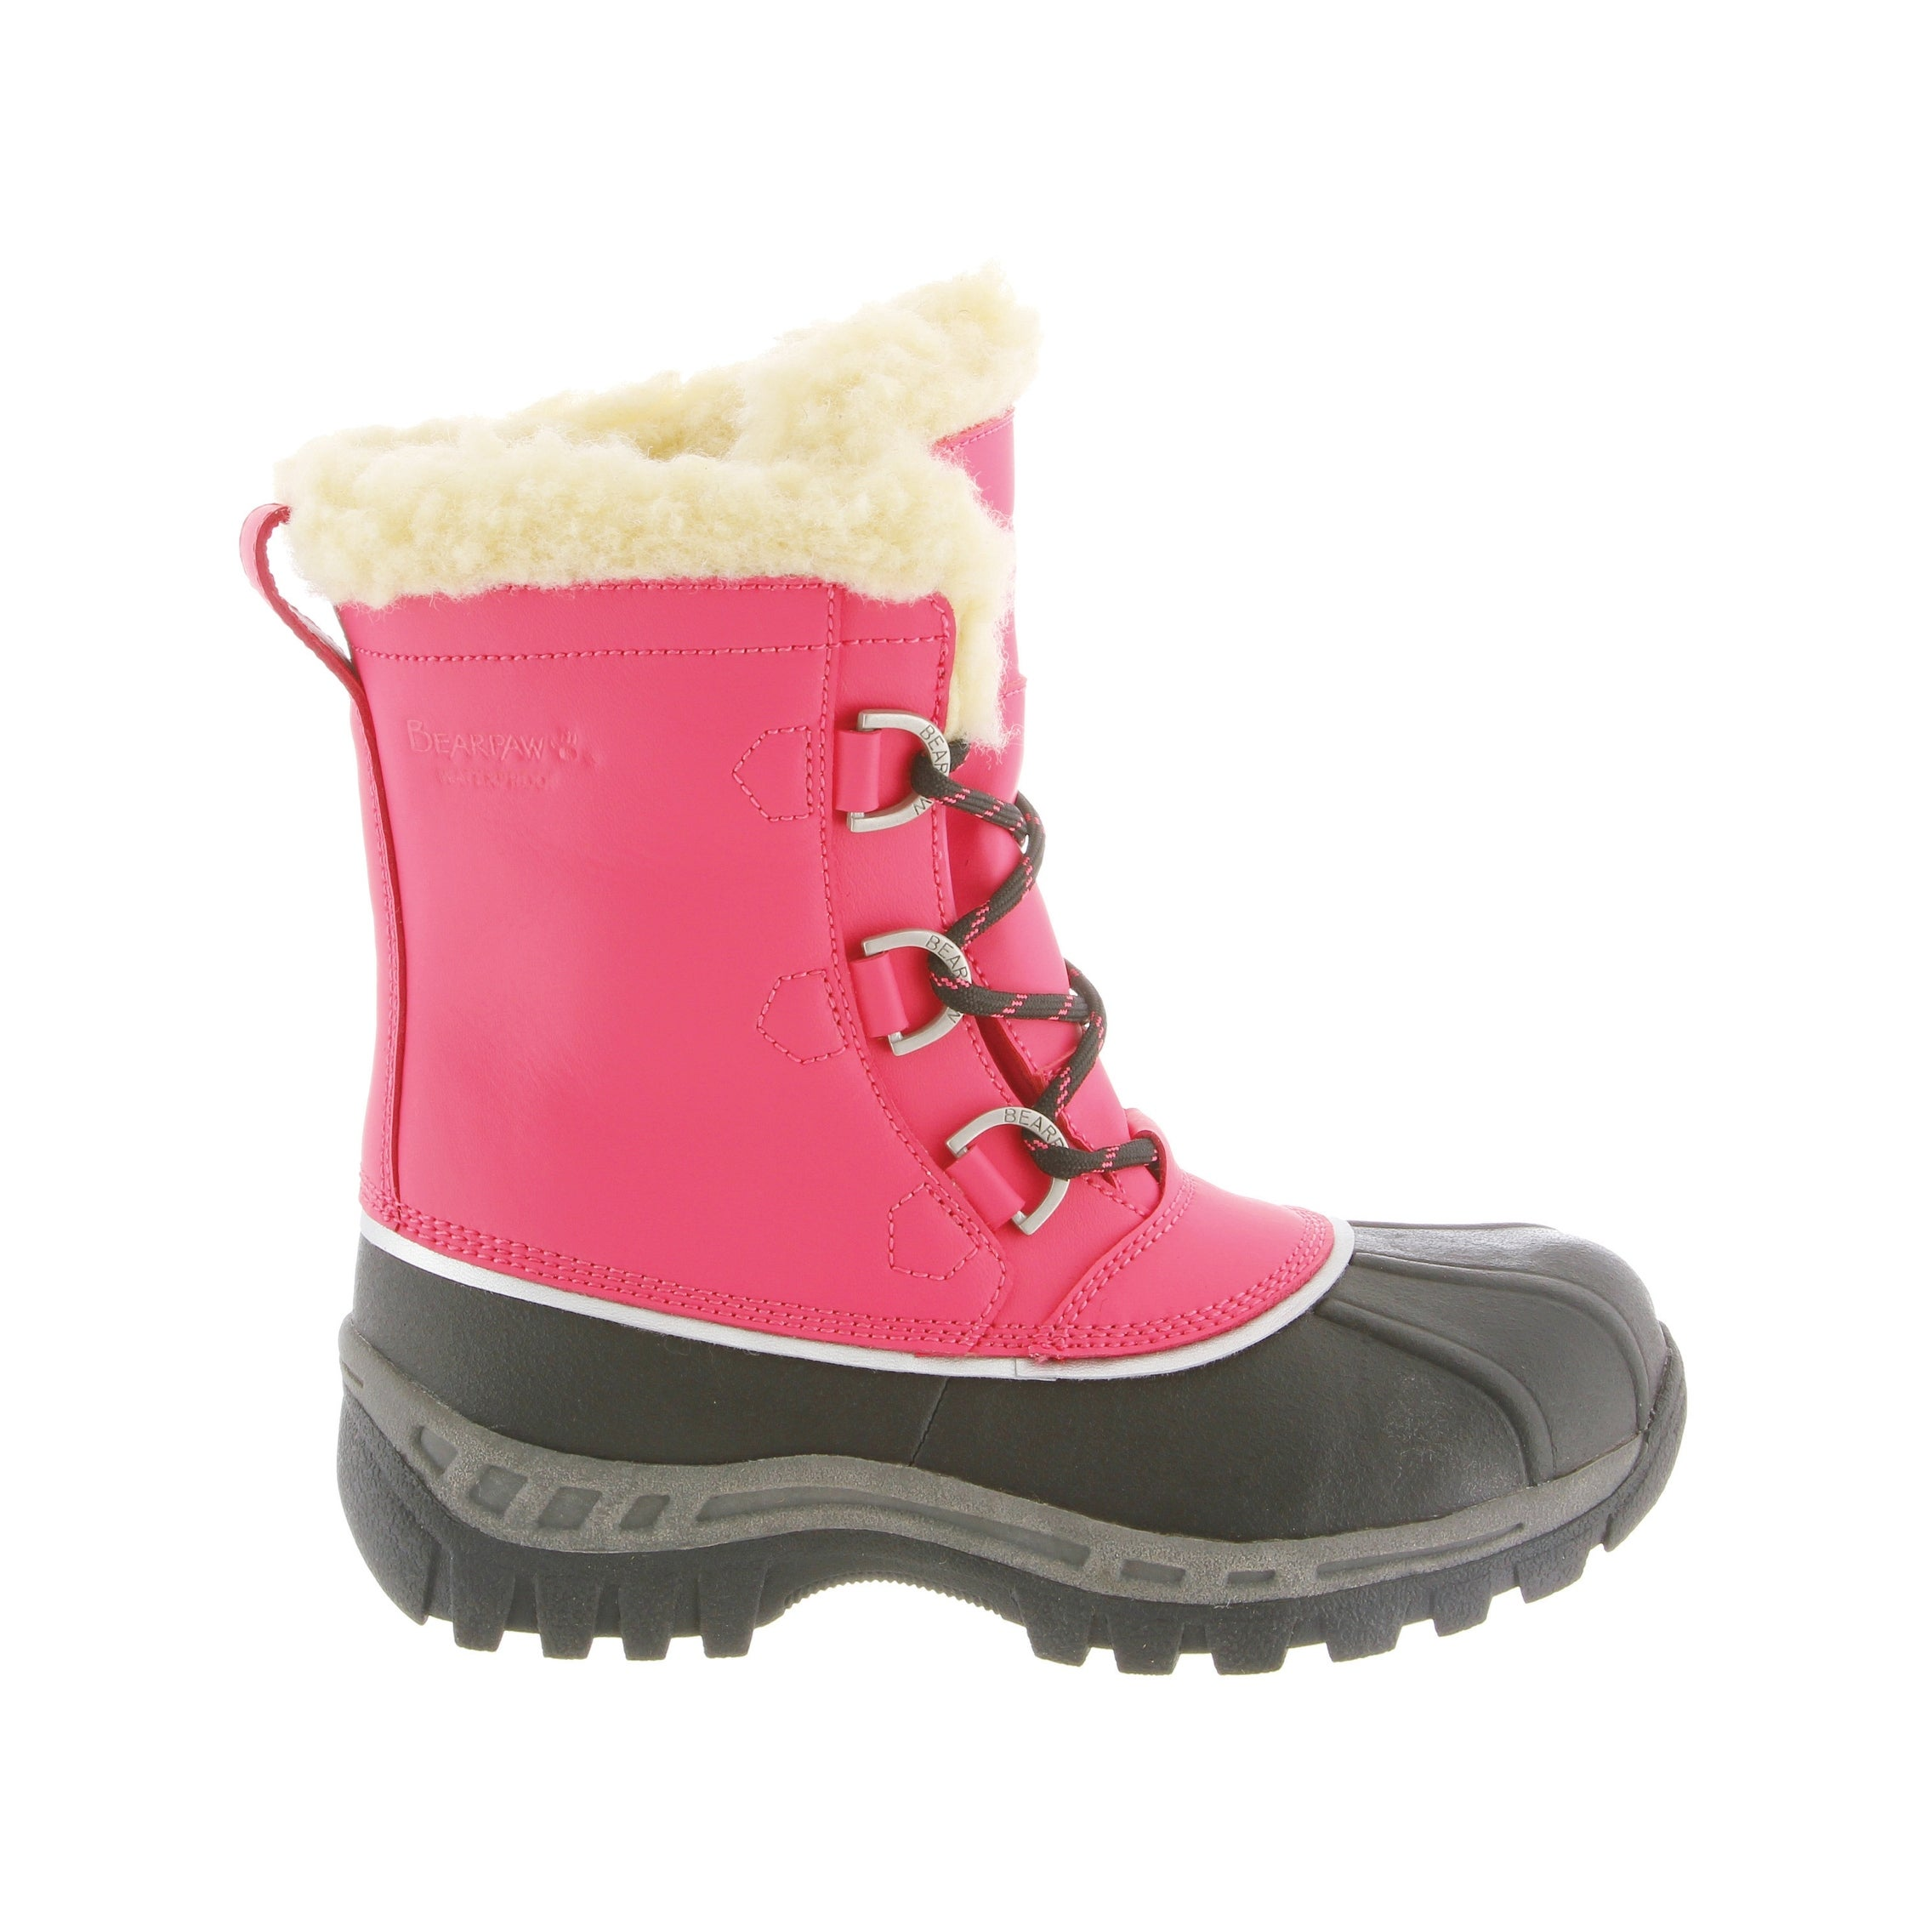 Kids' Clothing, Shoes & Accs Kind-Hearted Bearpaw Kelly Youth Boot Pink Size 13 Girls' Shoes